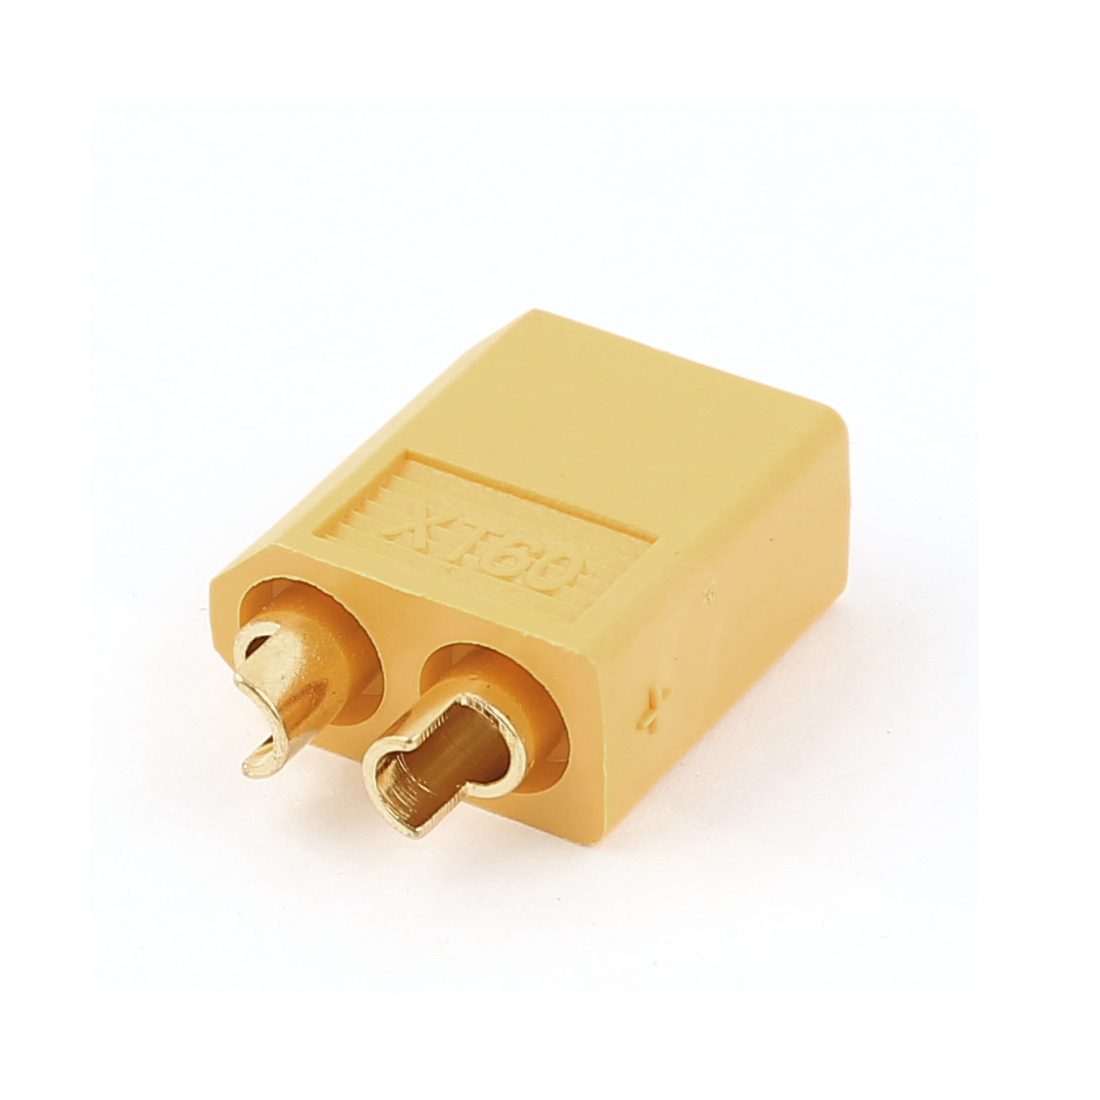 Spare Parts Male XT60 Plug Connector for RC Battery